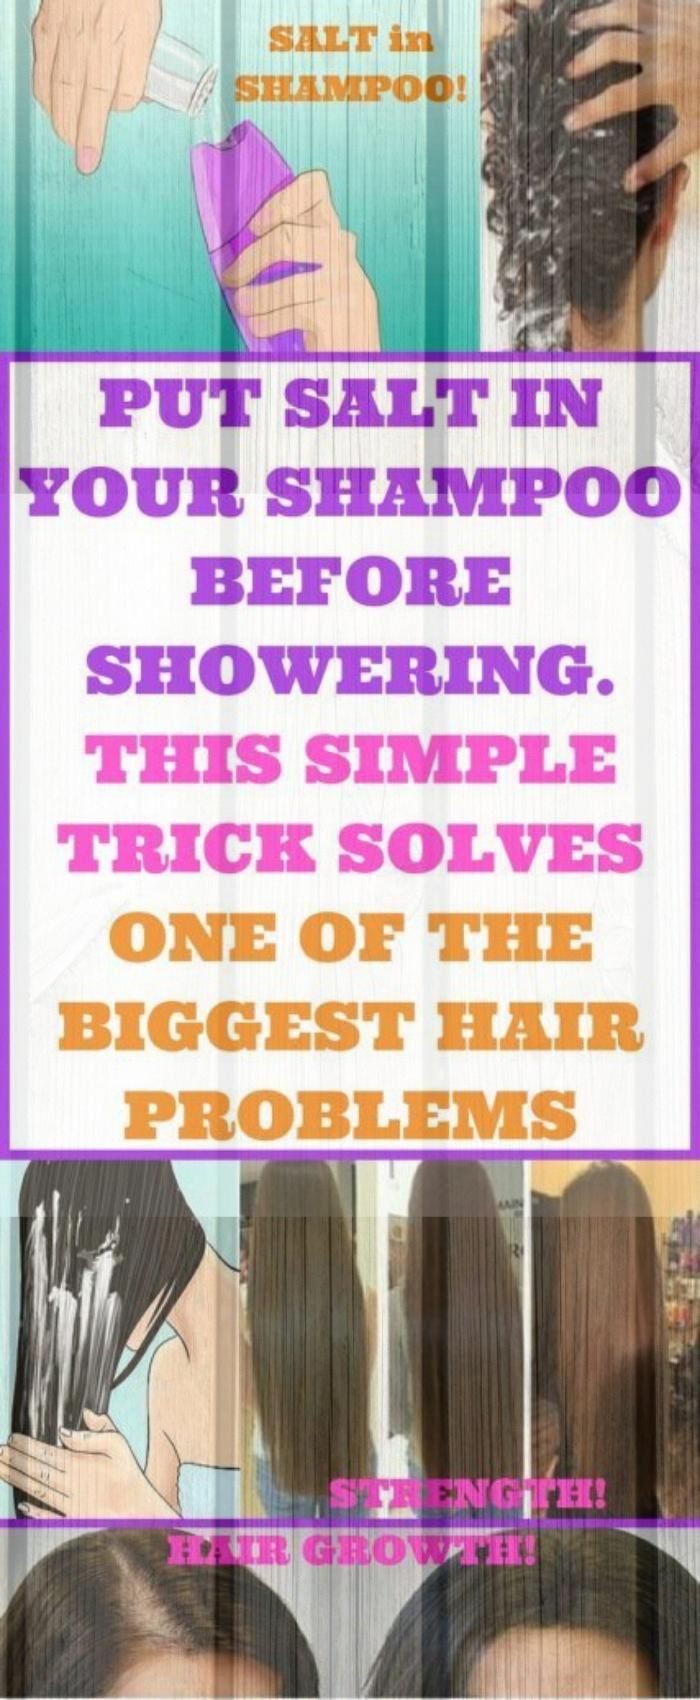 Put Salt In Your #shampoo Before Showering, This Simple Trick Solves One Of The Biggest Hair Problem...